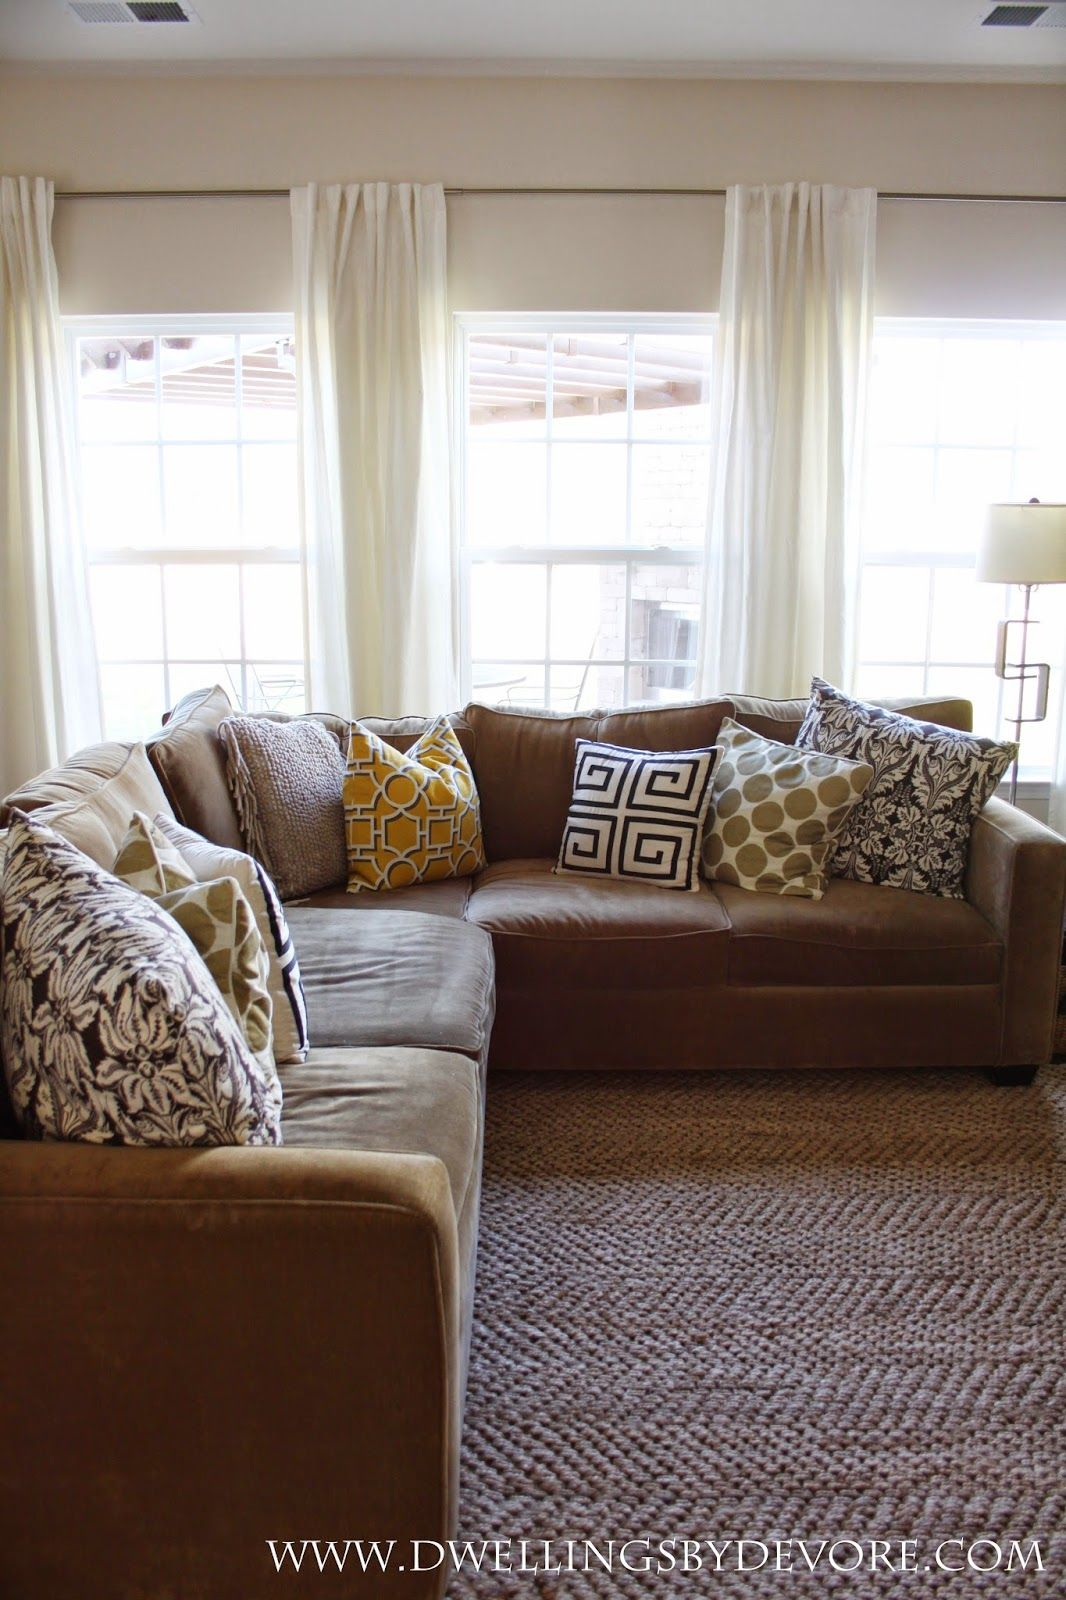 We have these rods and curtains in our living roomke it with